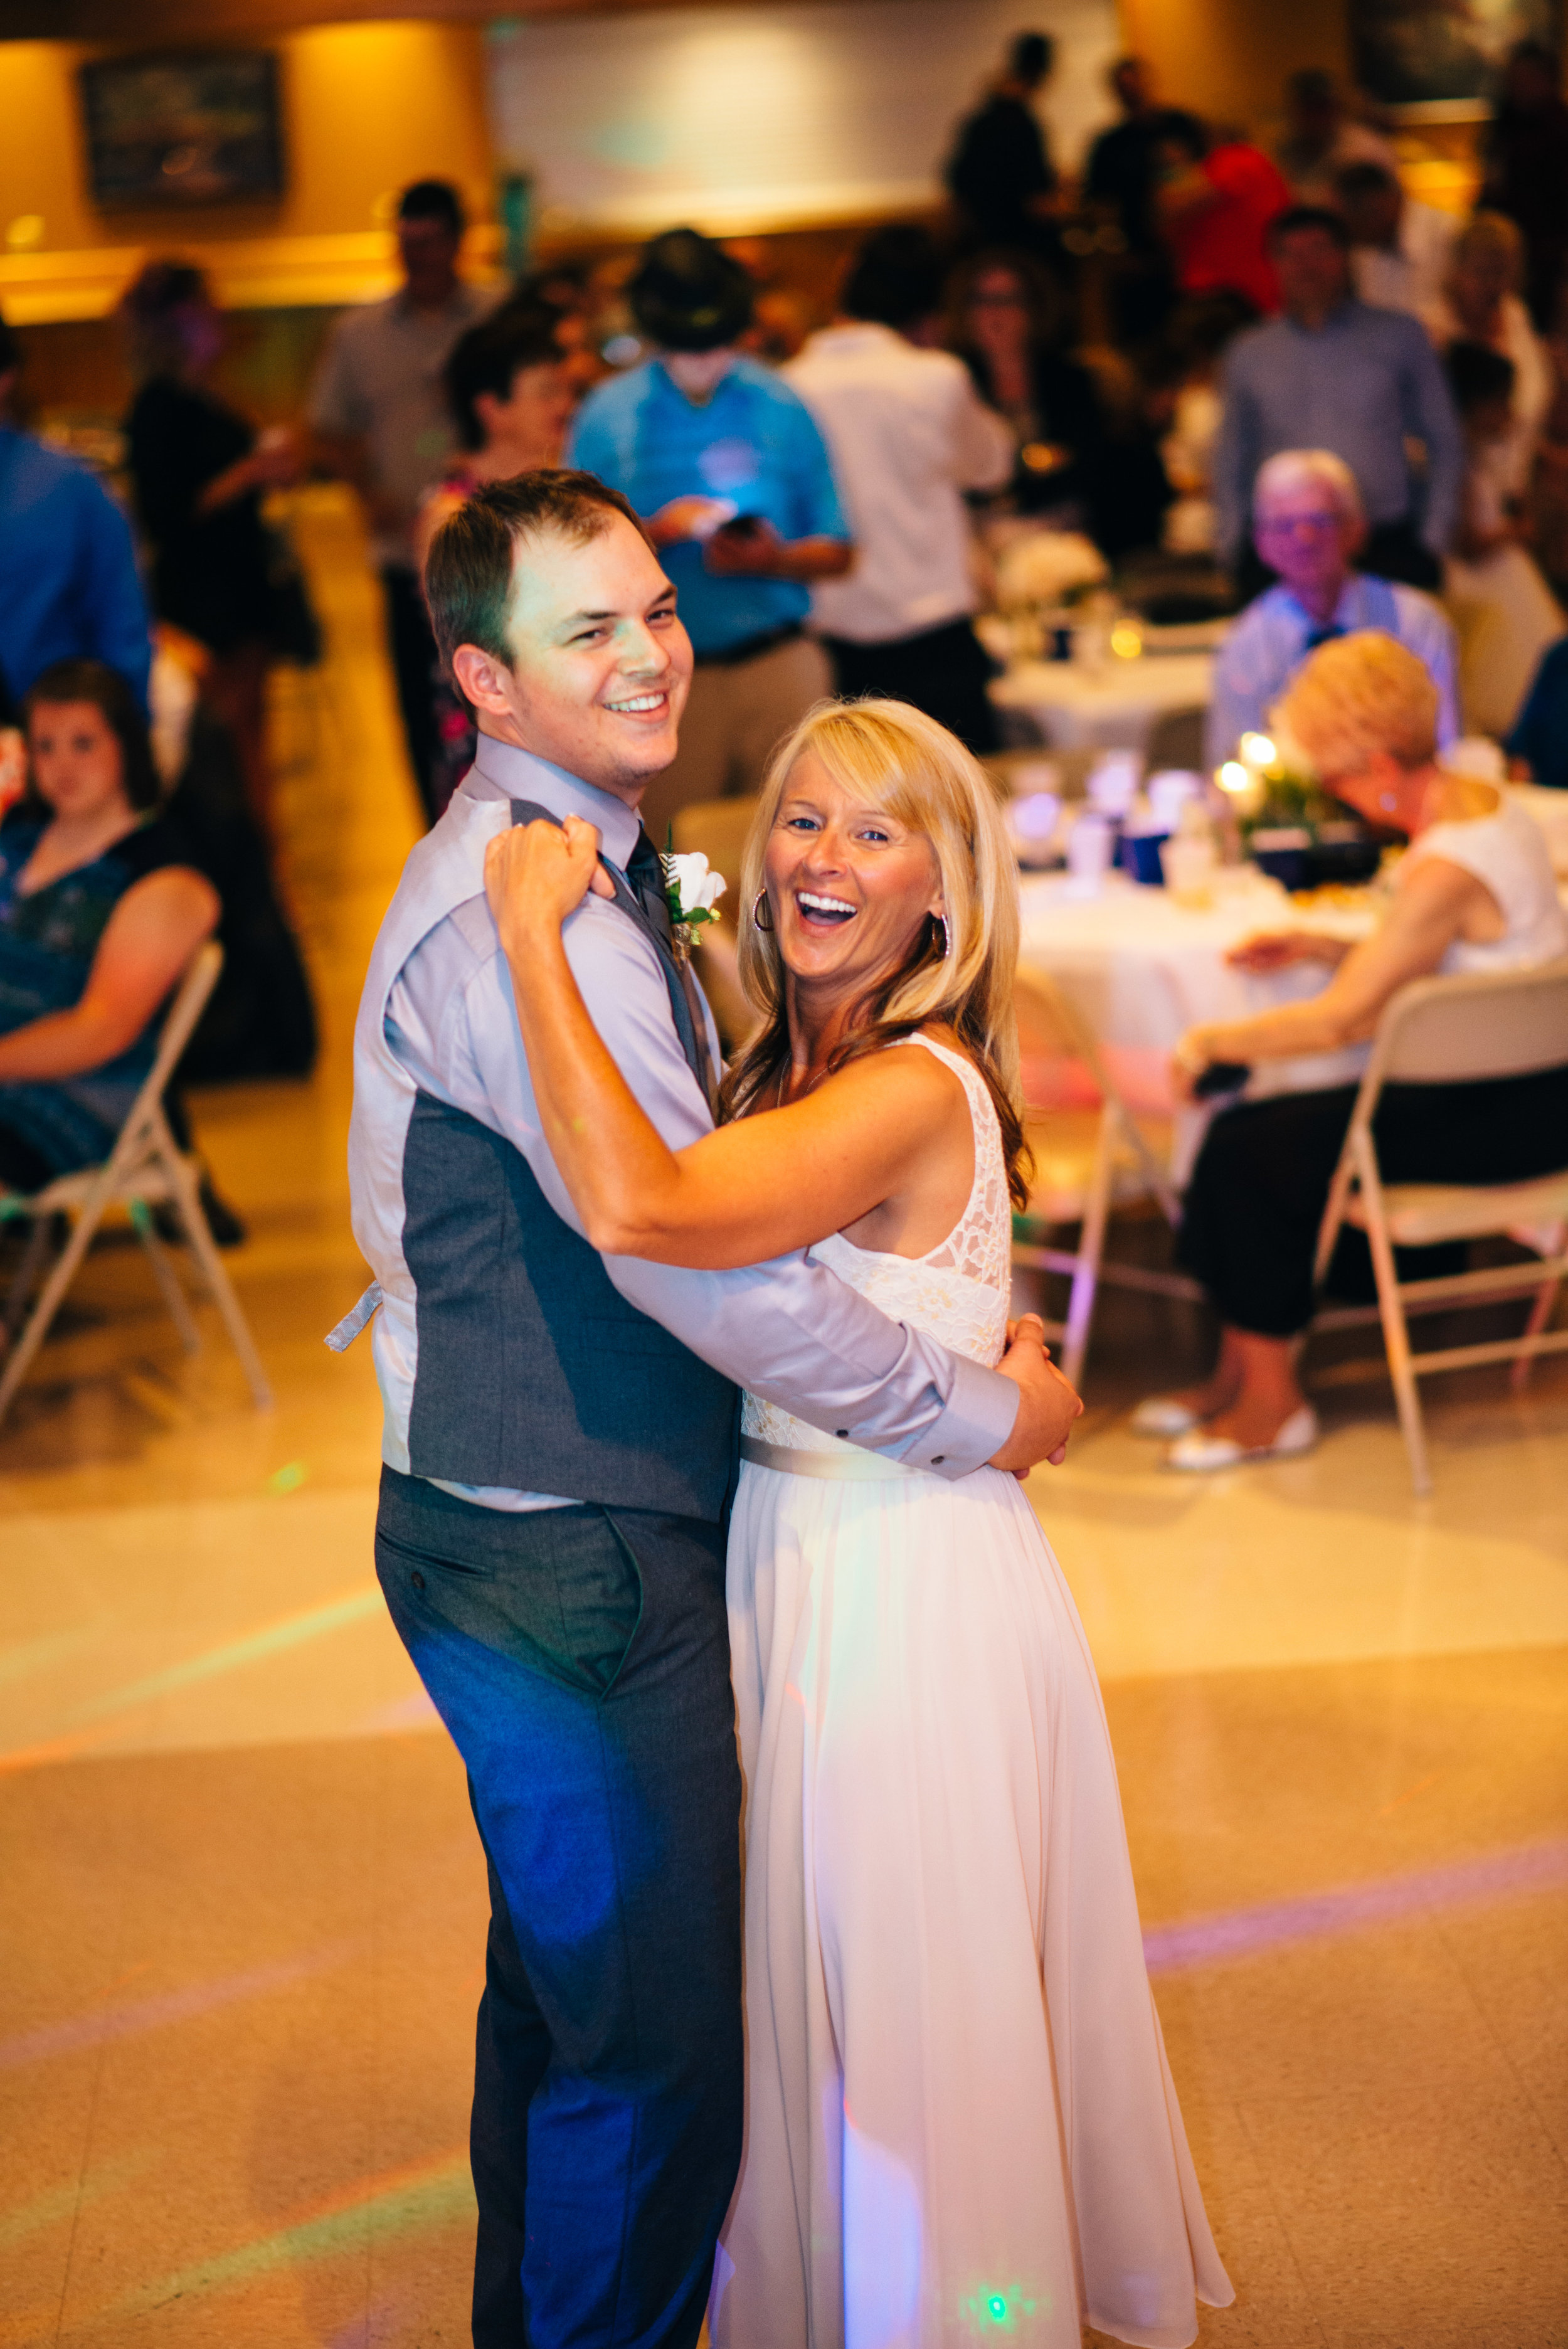 Mother son dance during wedding reception at Carrolltown Fire Co. Banquet Hall